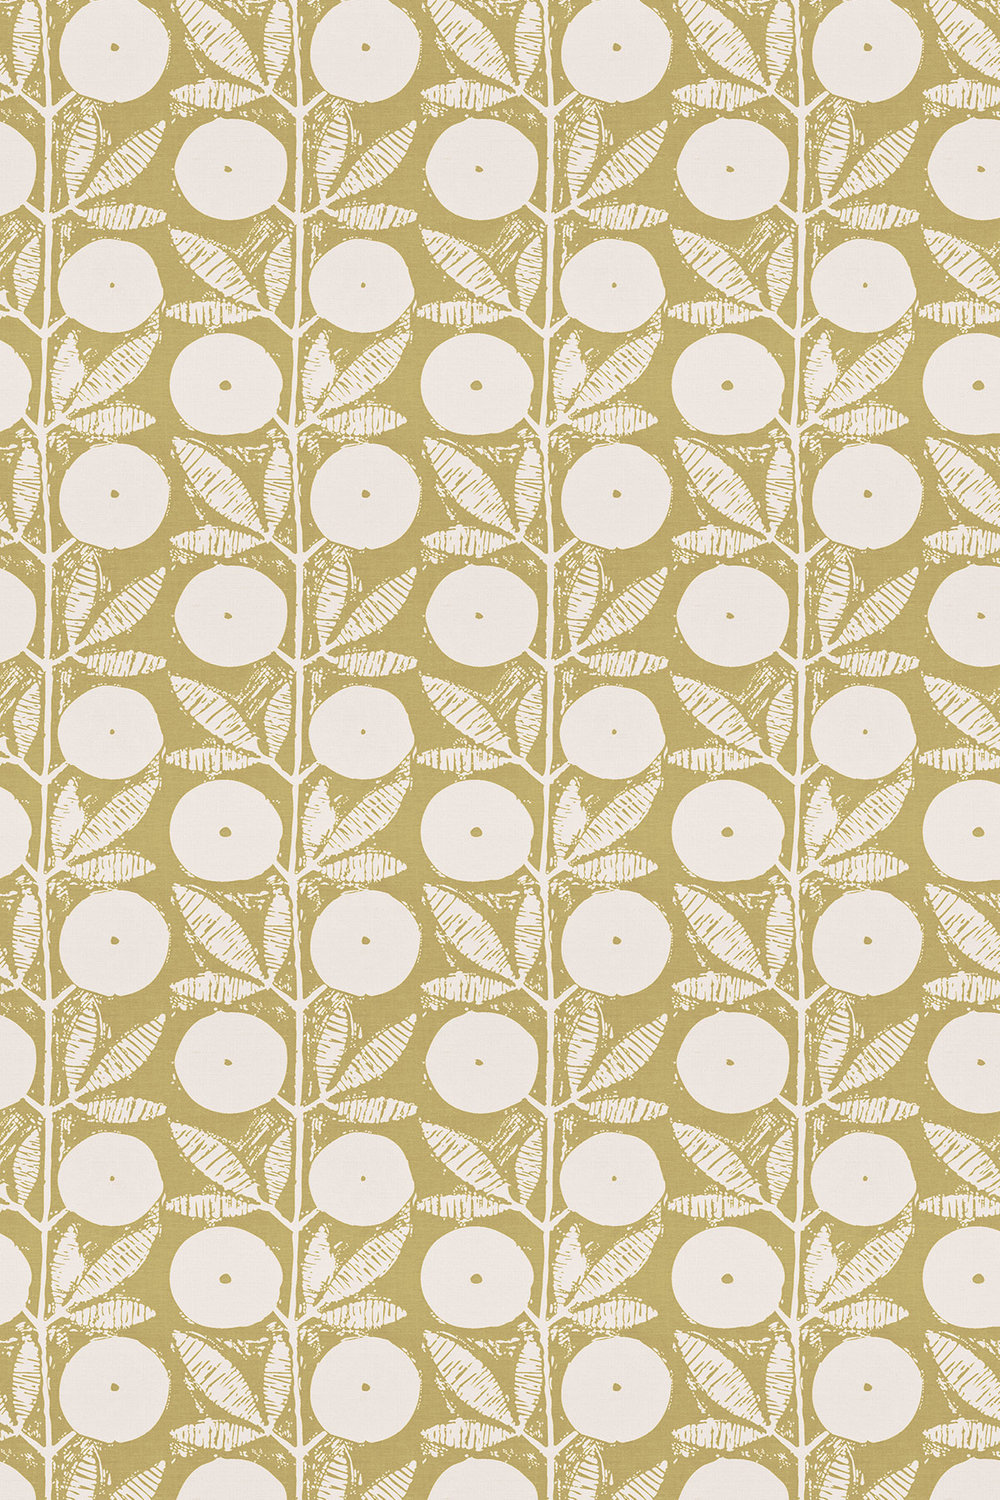 Somero Weave Fabric - Pistachio and Pumice - by Scion